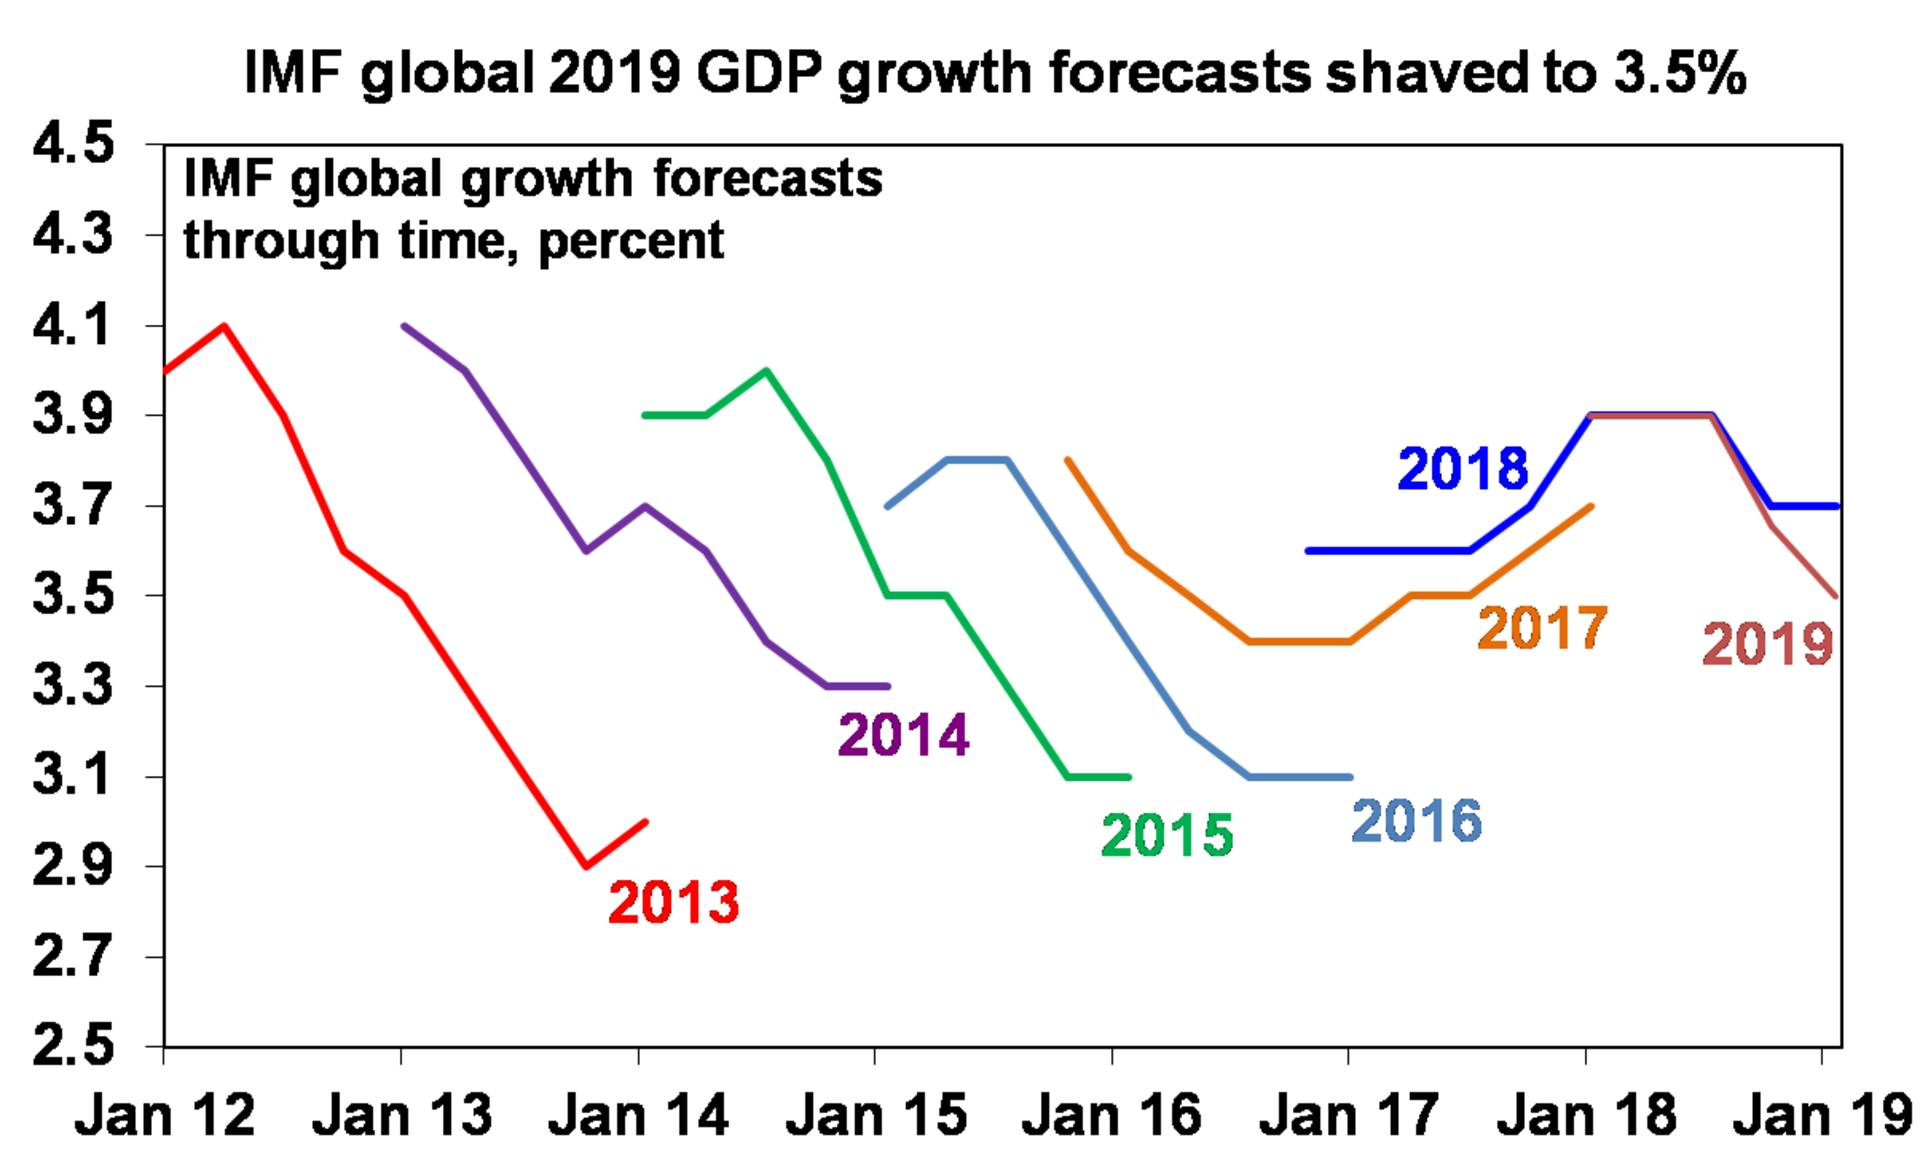 IMF global 2019 GDP growth forecasts shaved to 3.5%